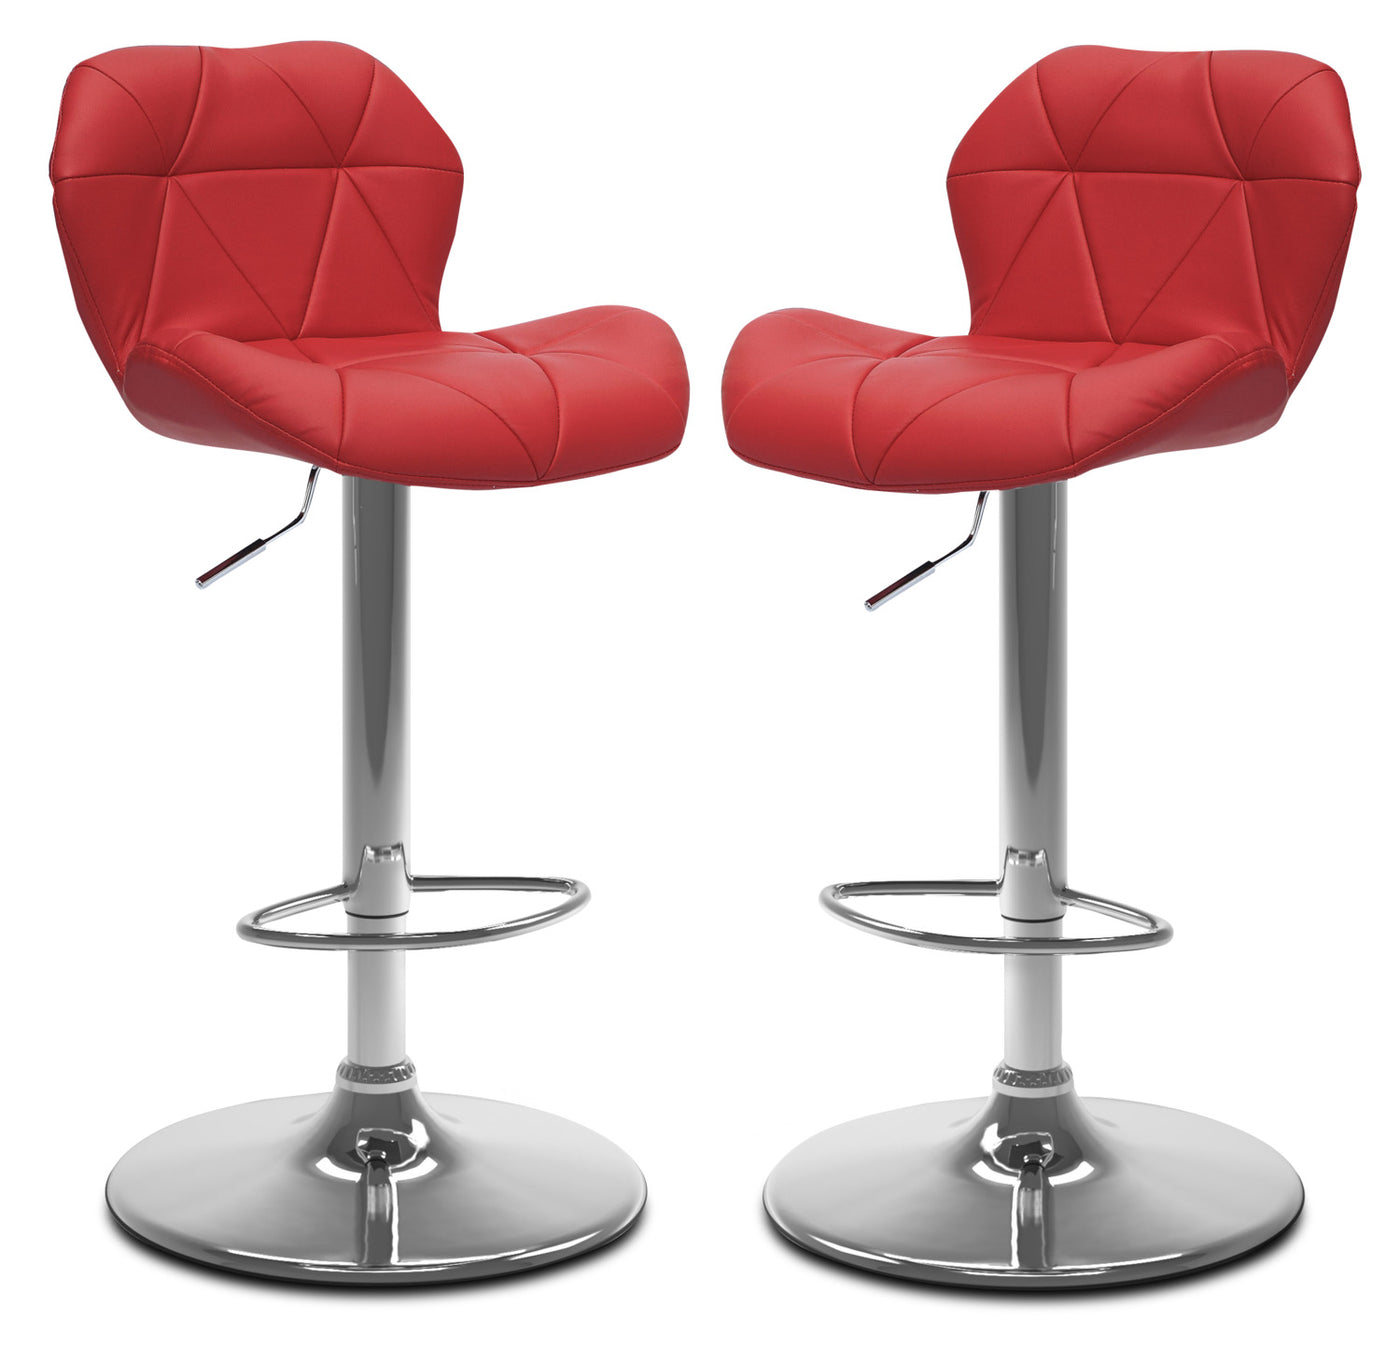 Wondrous Emry Adjustable Bar Stool Set Of 2 Red Machost Co Dining Chair Design Ideas Machostcouk